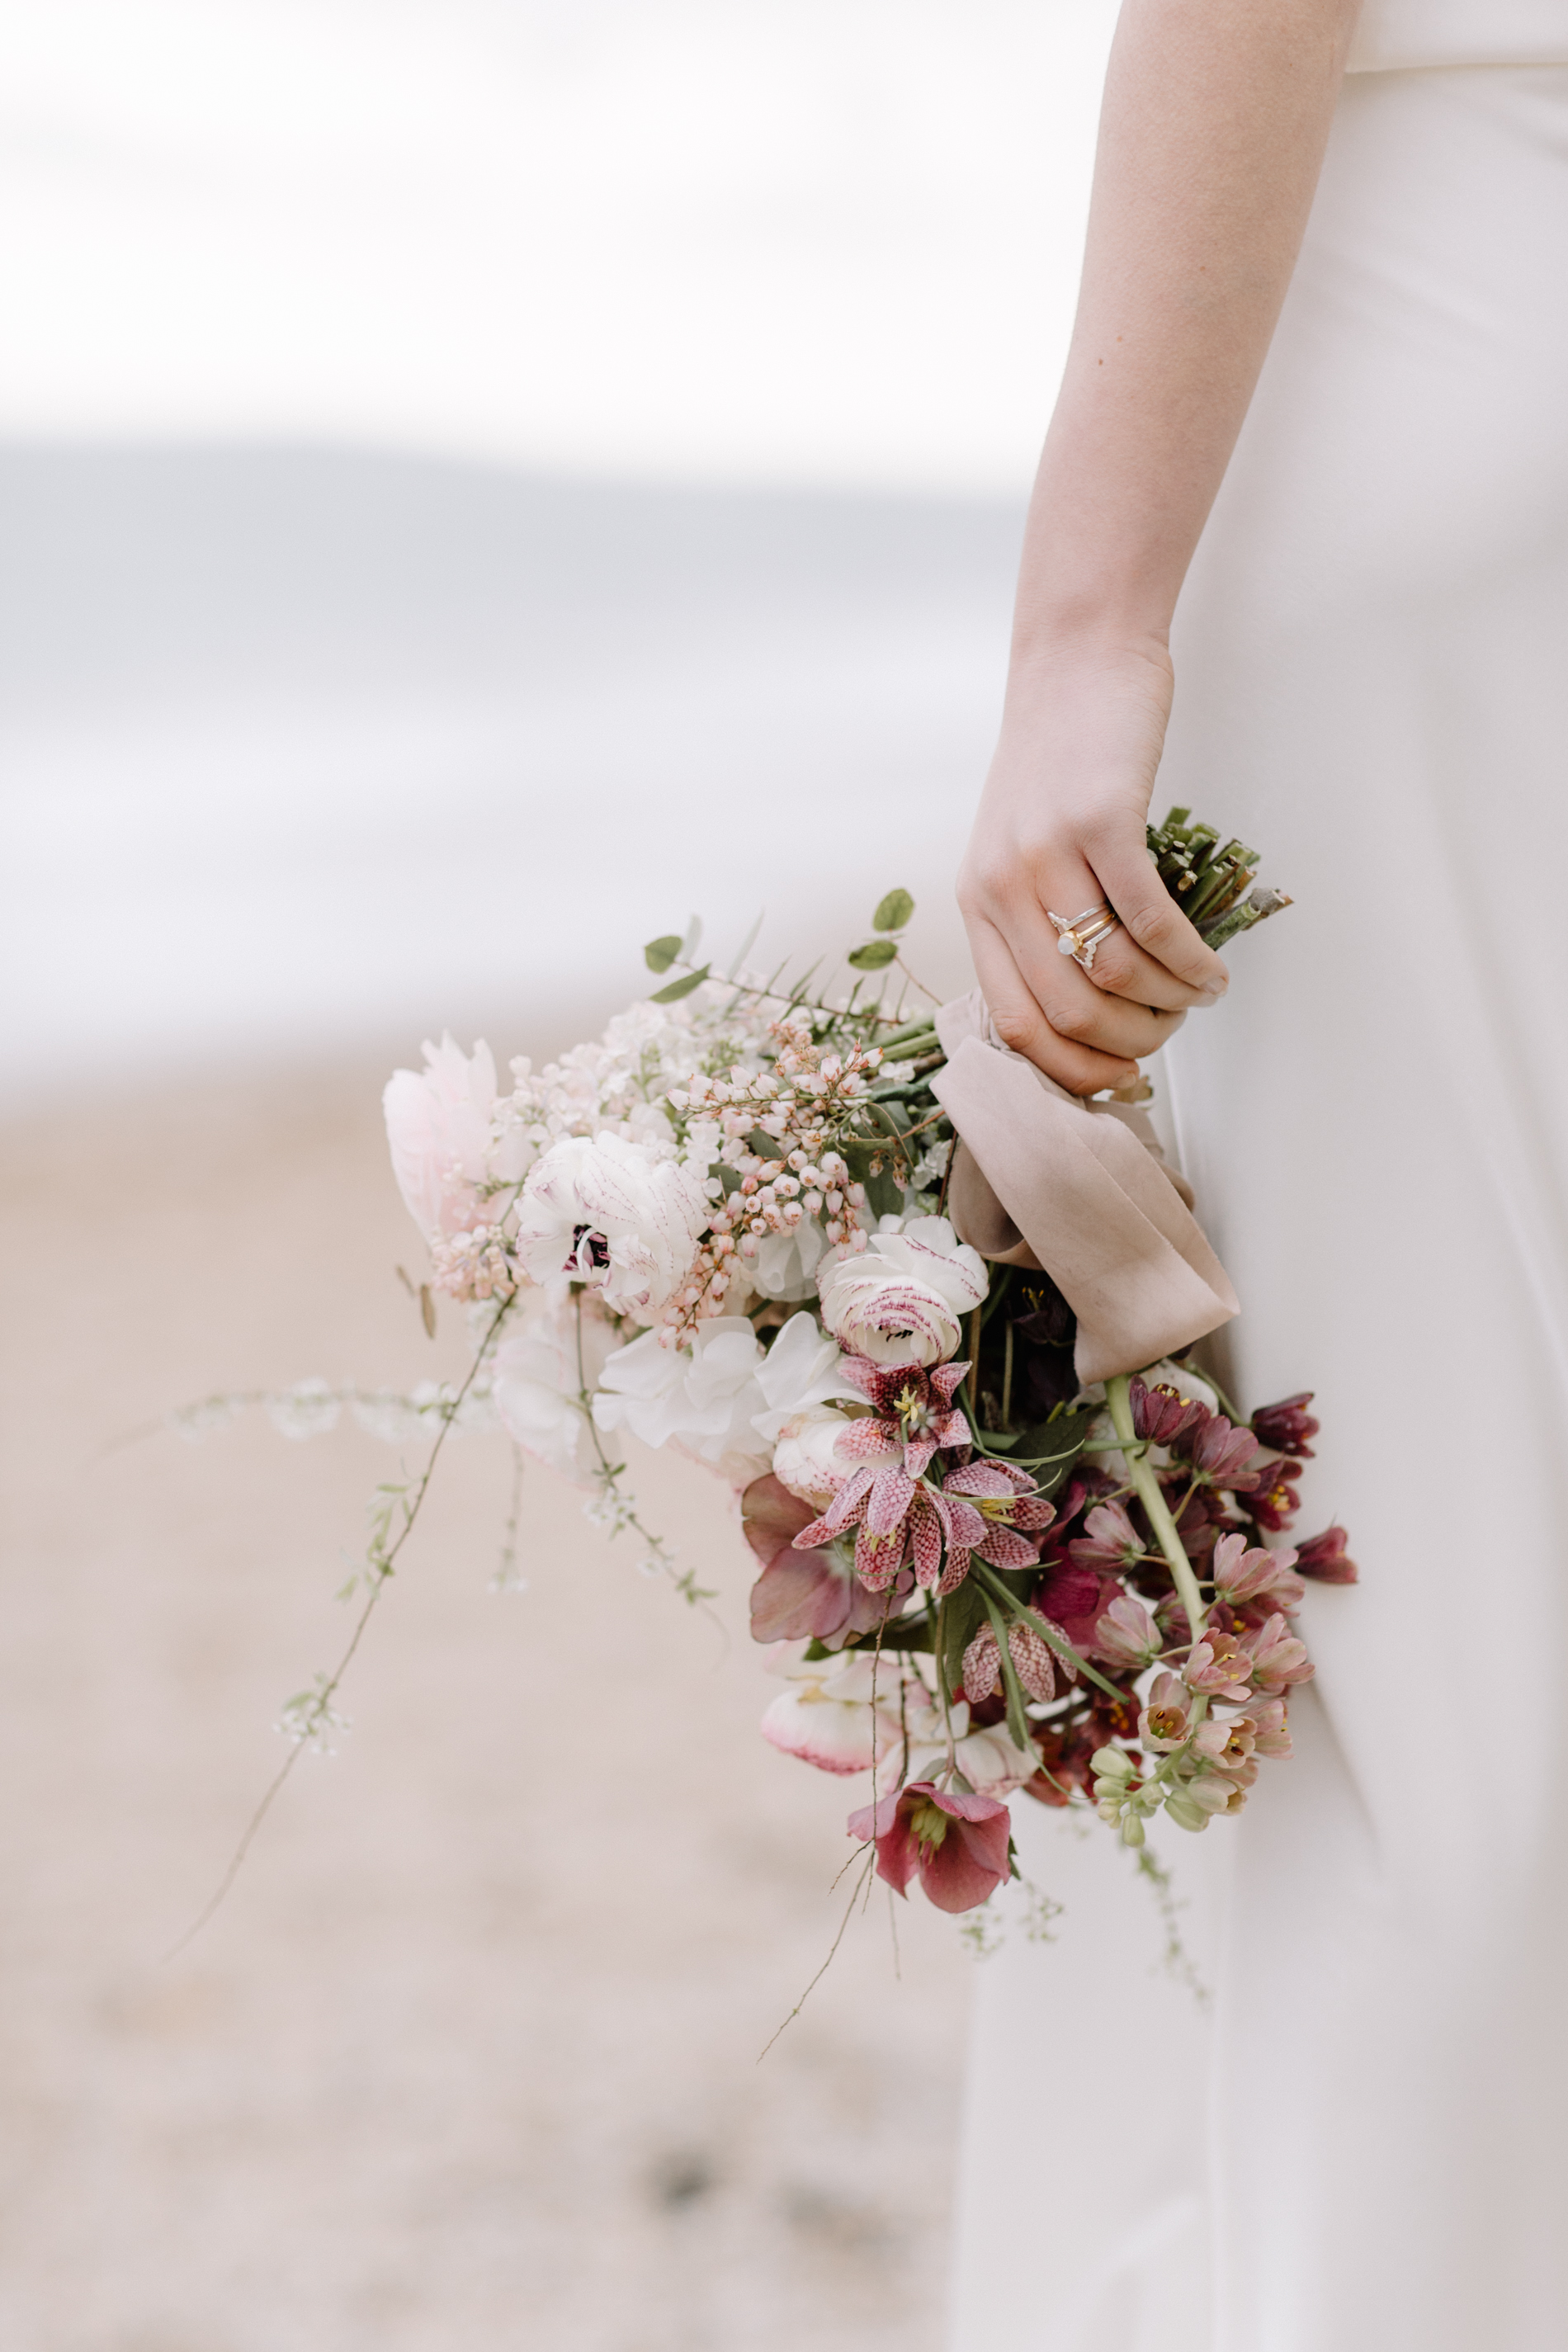 Bouquet by Ruby & The Wolf, Image by Beccy Goddard